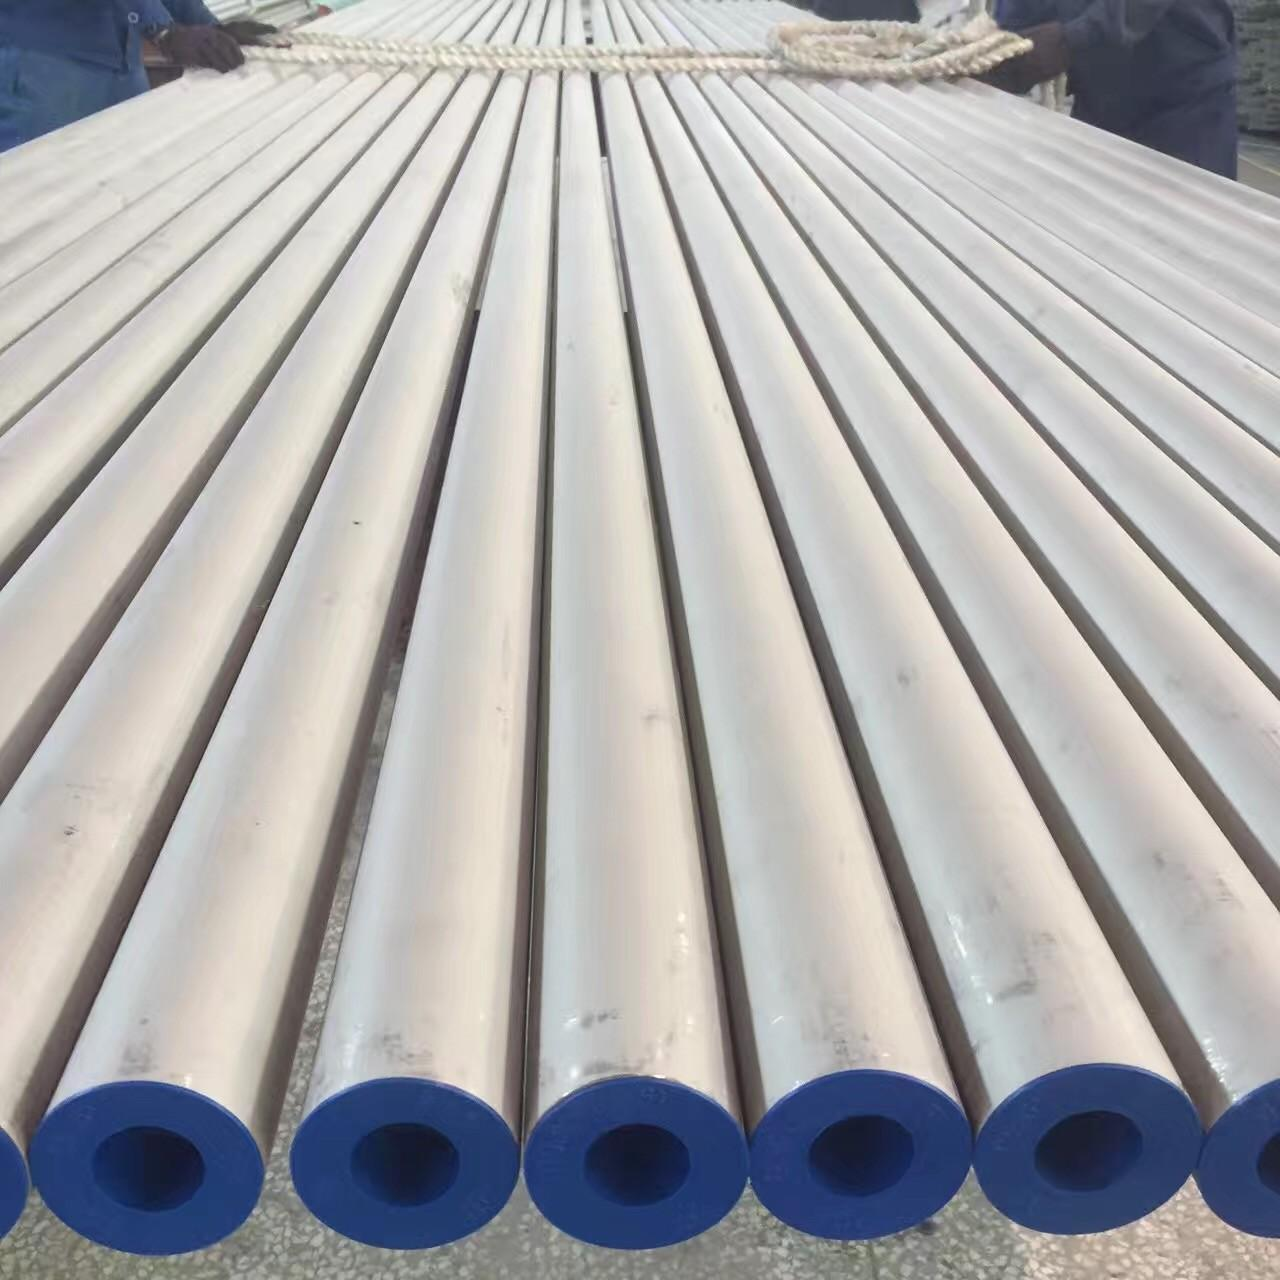 China Stainless Steel Seamless Pipe, EN 10216-5 TC 1 D3/T3 1.4301 (TP304/304L), 1.4404, 1.4571 on sale